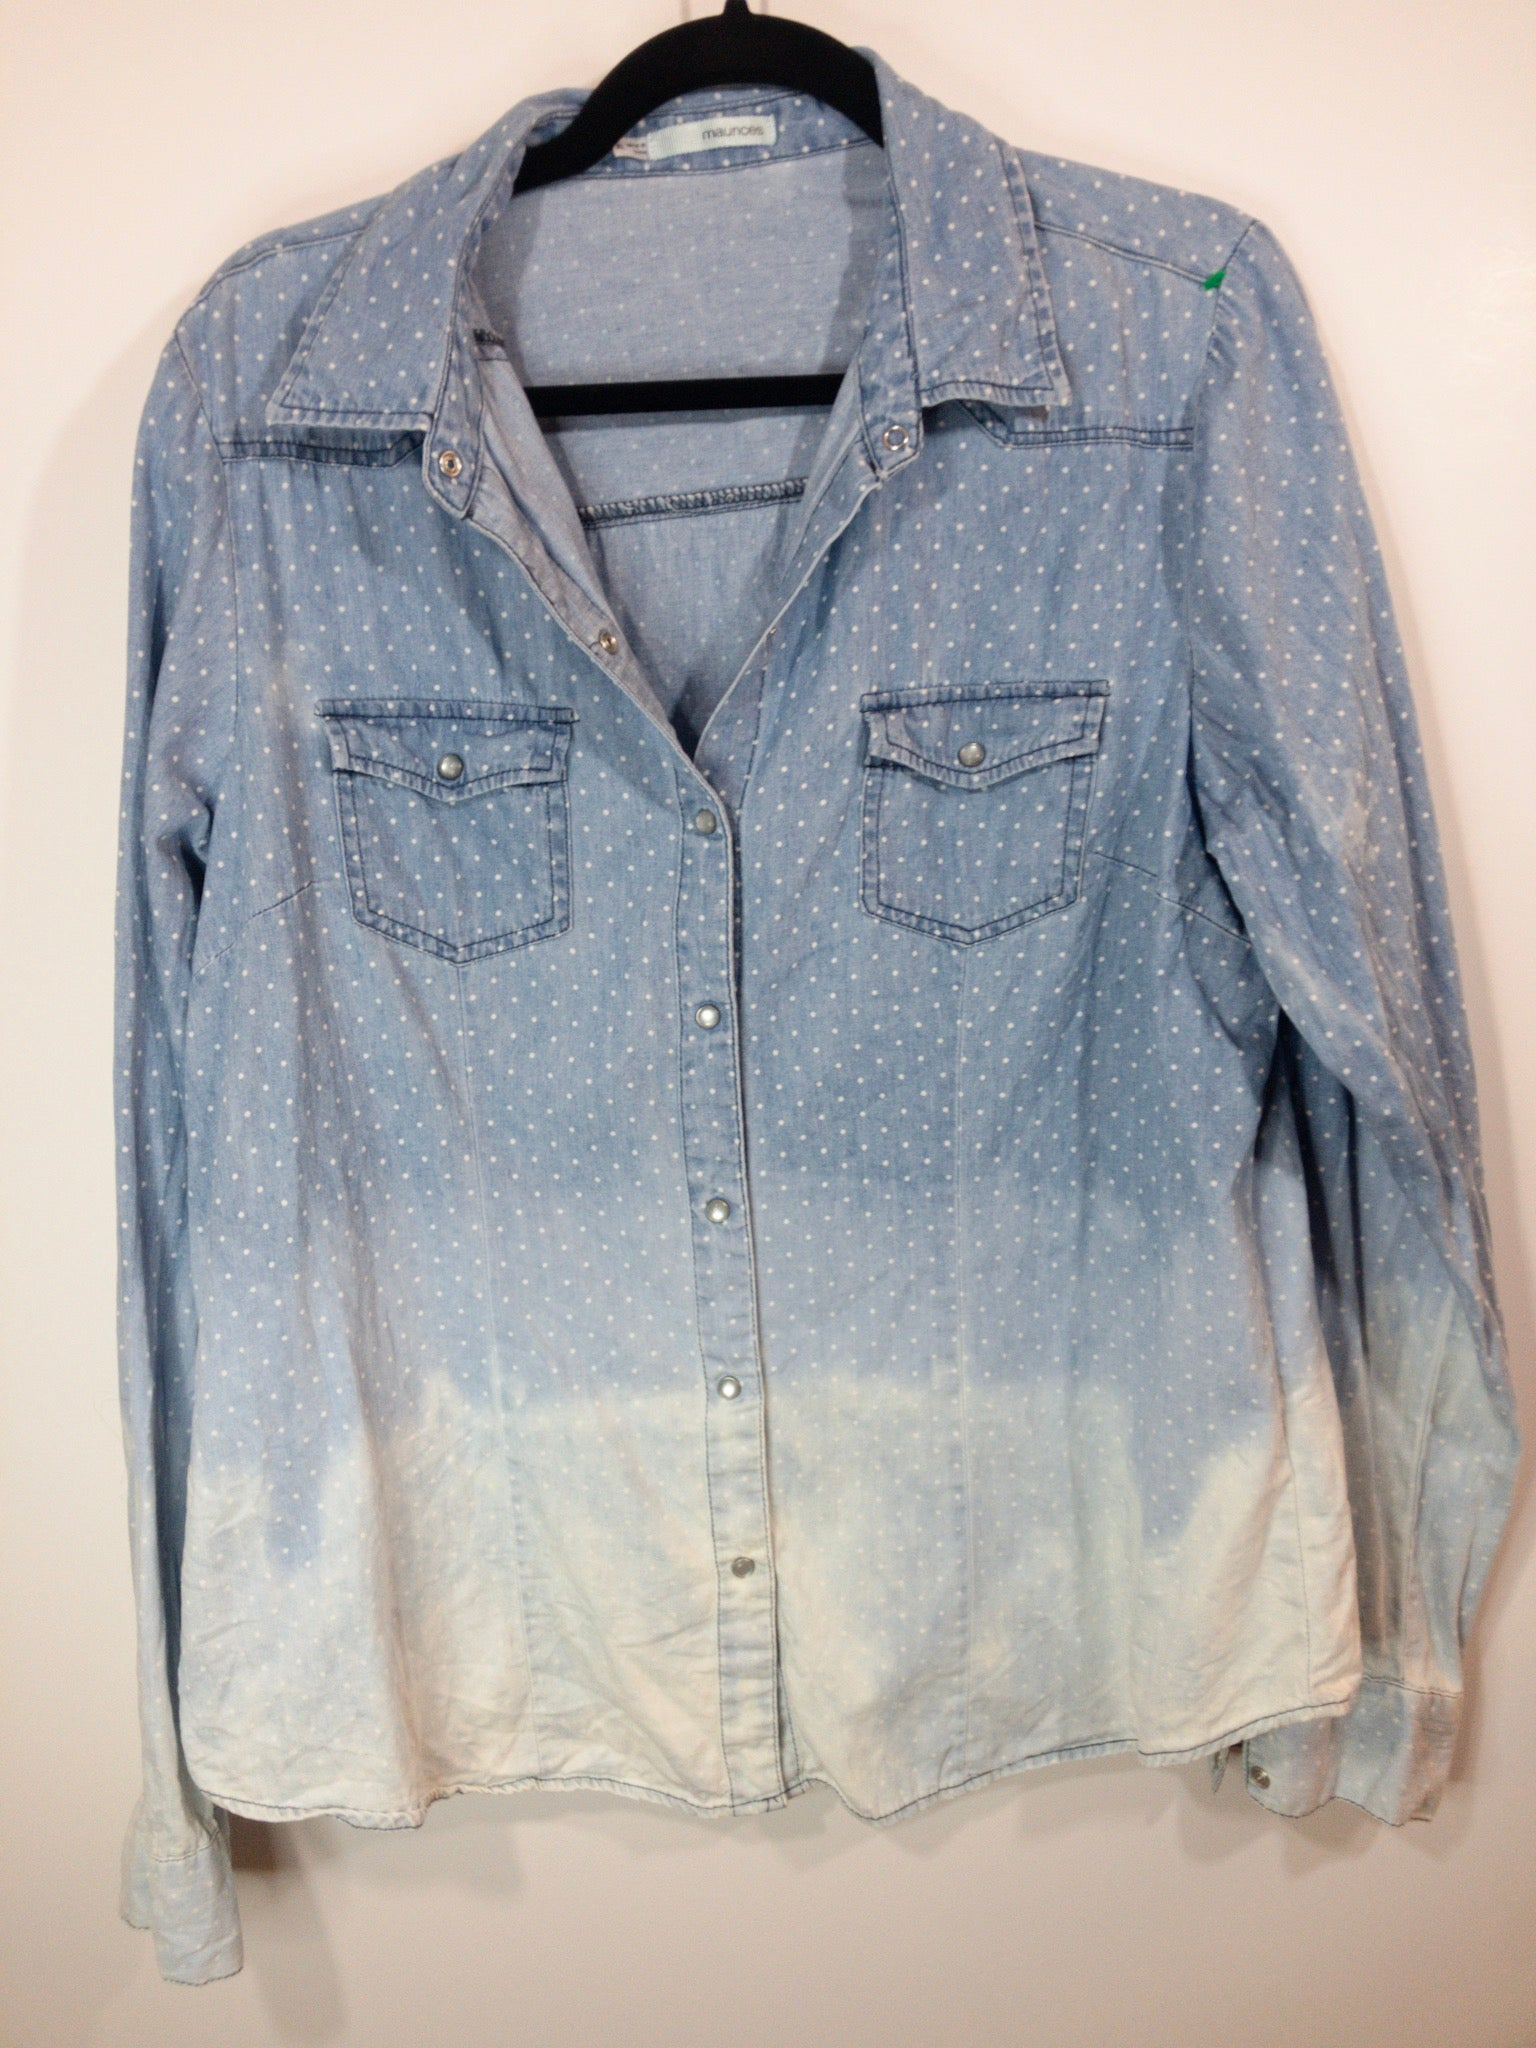 Distressed Bleached Shirt - Maurice's - Juniors Size XL - True Bliss Boutique